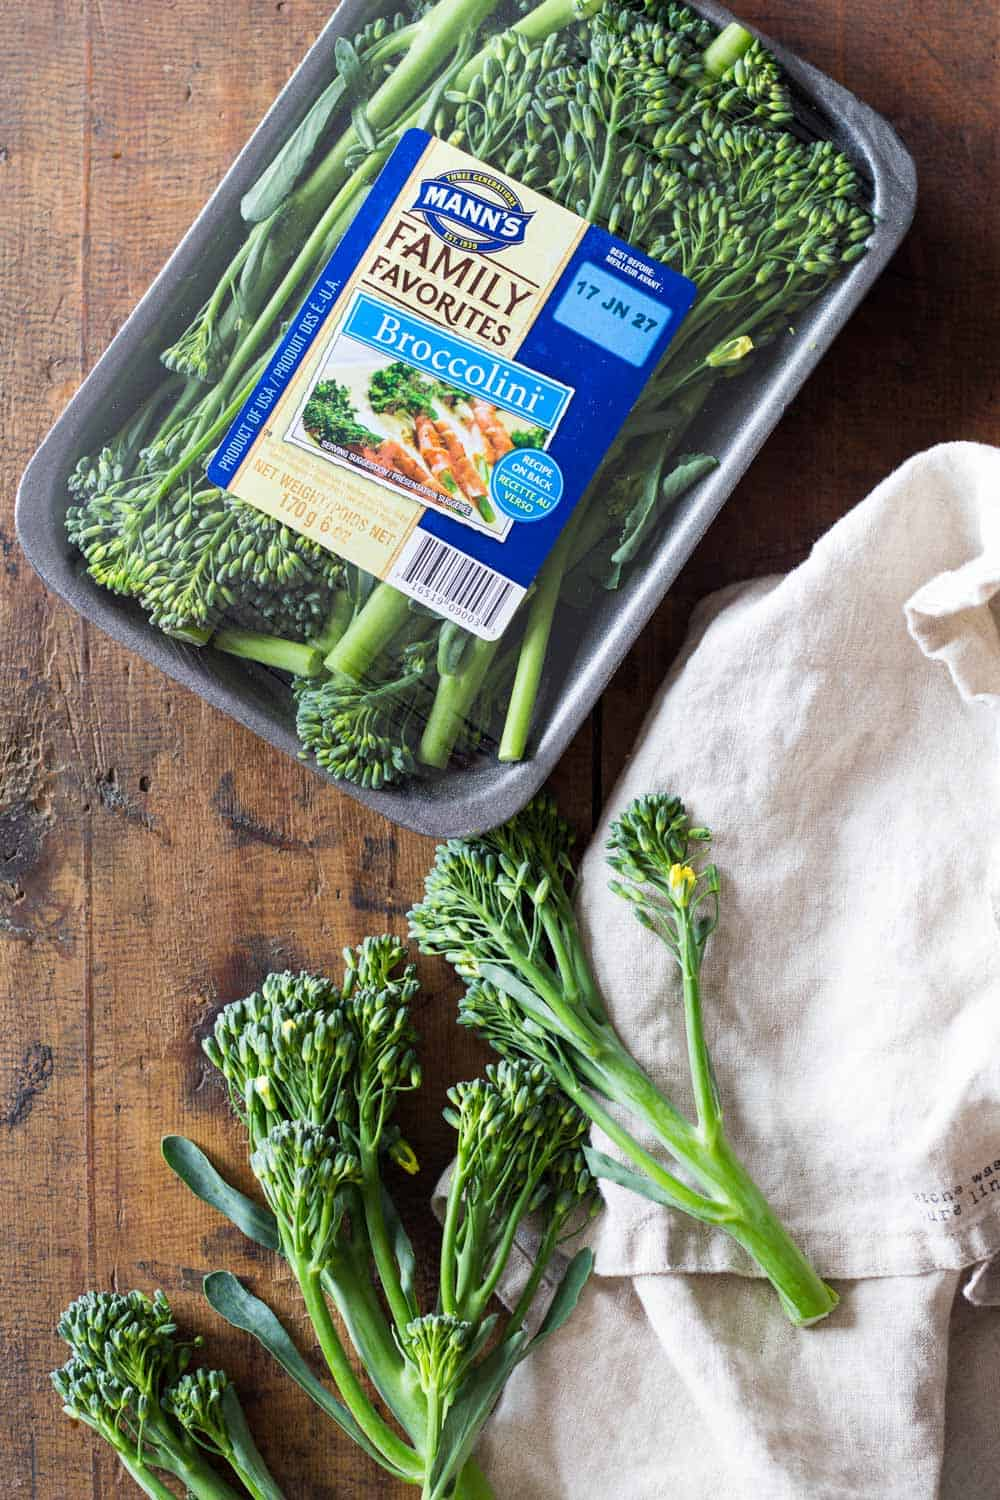 Mann's broccolini package and loose broccolini branches presented outside the package on a table